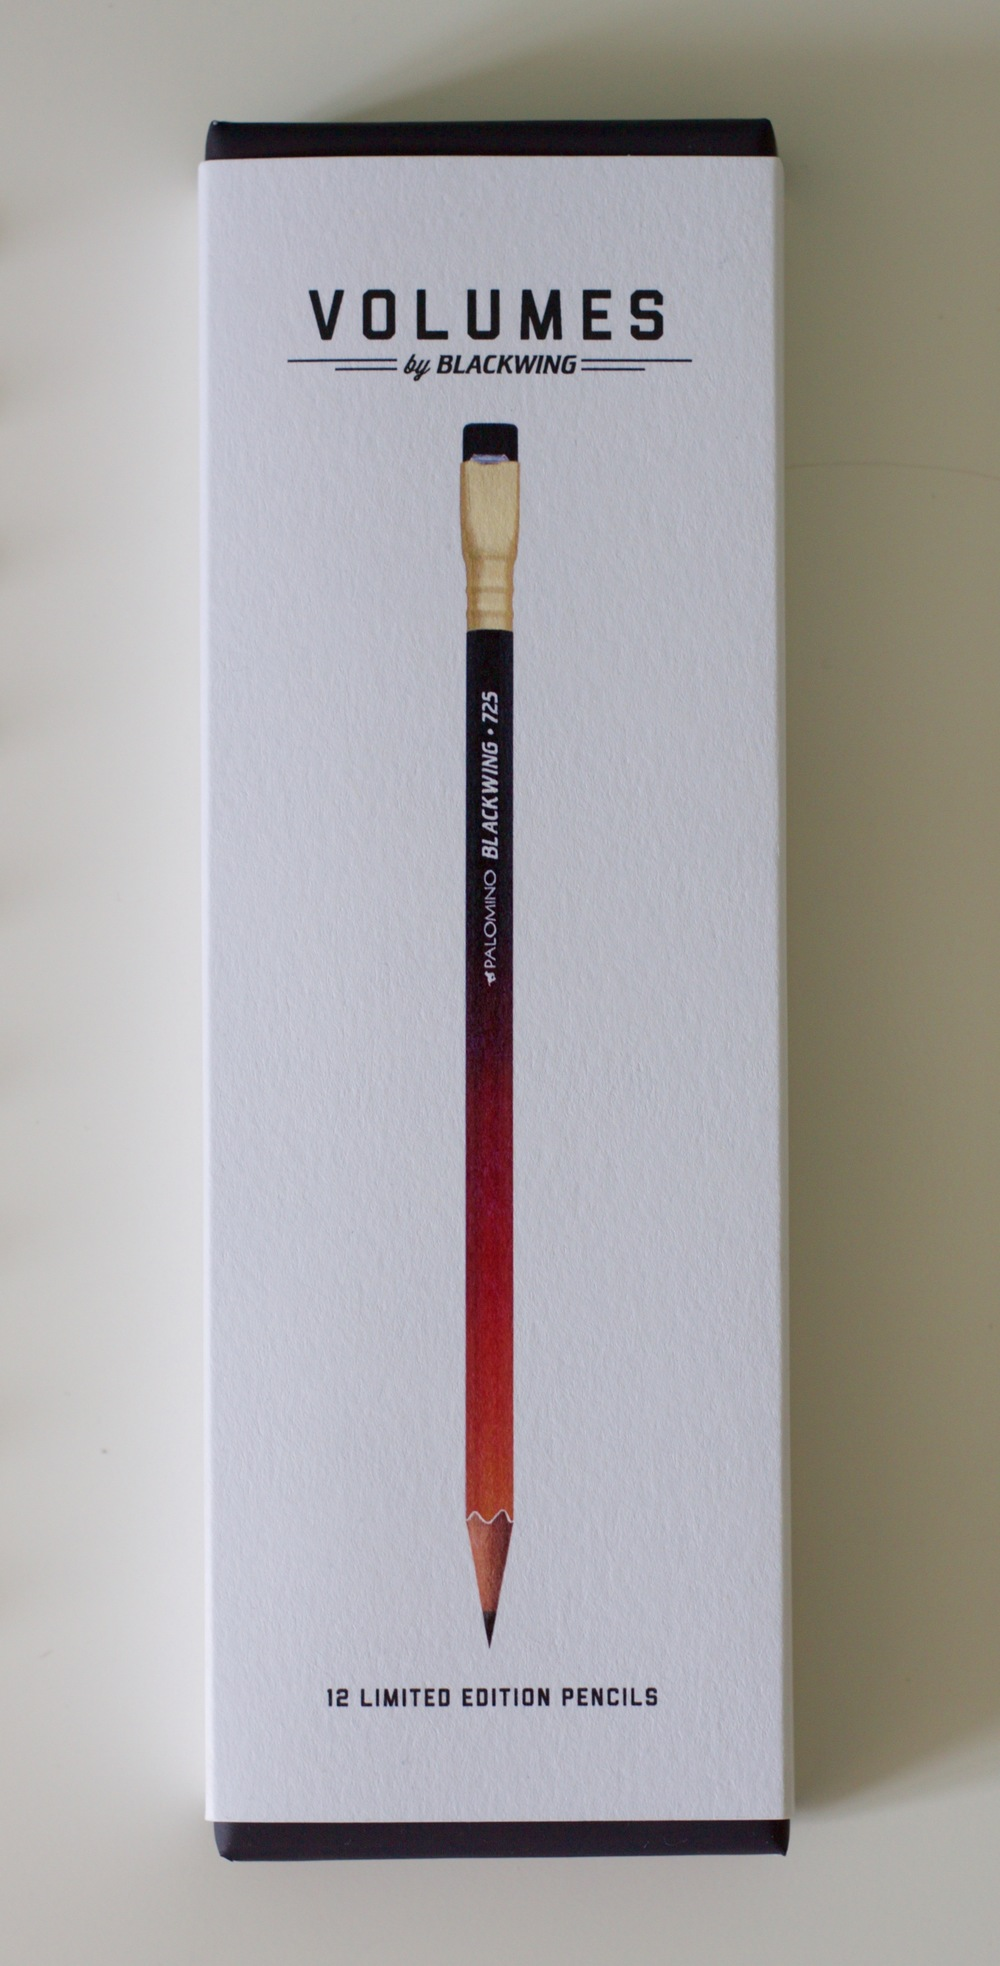 Beautiful Blackwing packaging